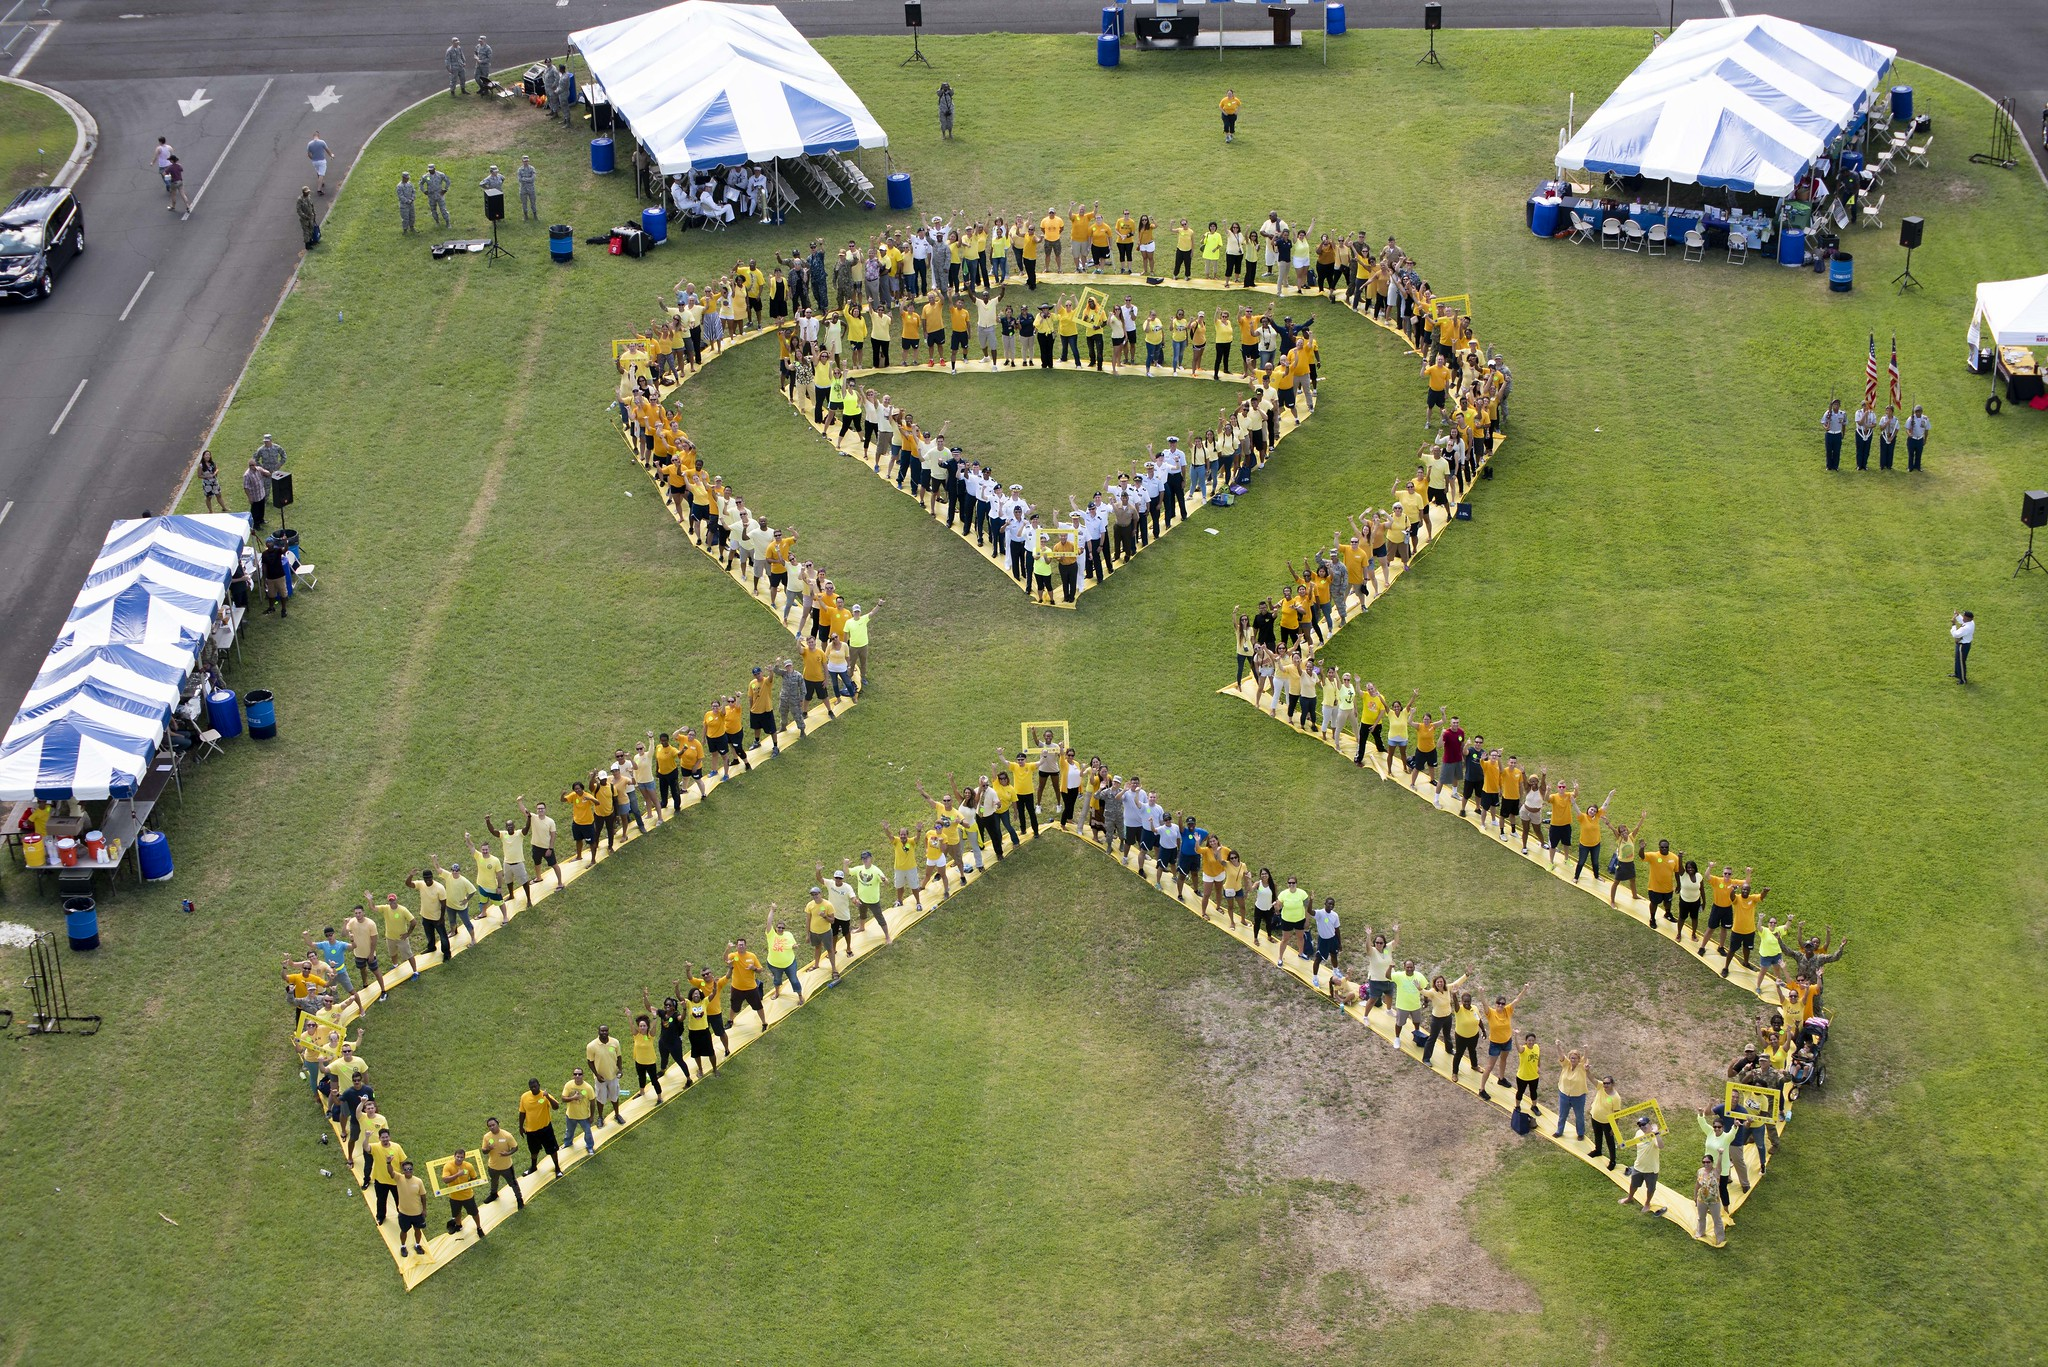 Hawaii-based service members from every branch of service, Department of Defense personnel, and military and DoD families form a human chain in the shape of a yellow suicide awareness ribbon on Sept. 5, 2018, in support of National Suicide Awareness Month at Joint Base Pearl Harbor-Hickam. (Mass Communication Specialist 1st Class Corwin Colbert/Navy)